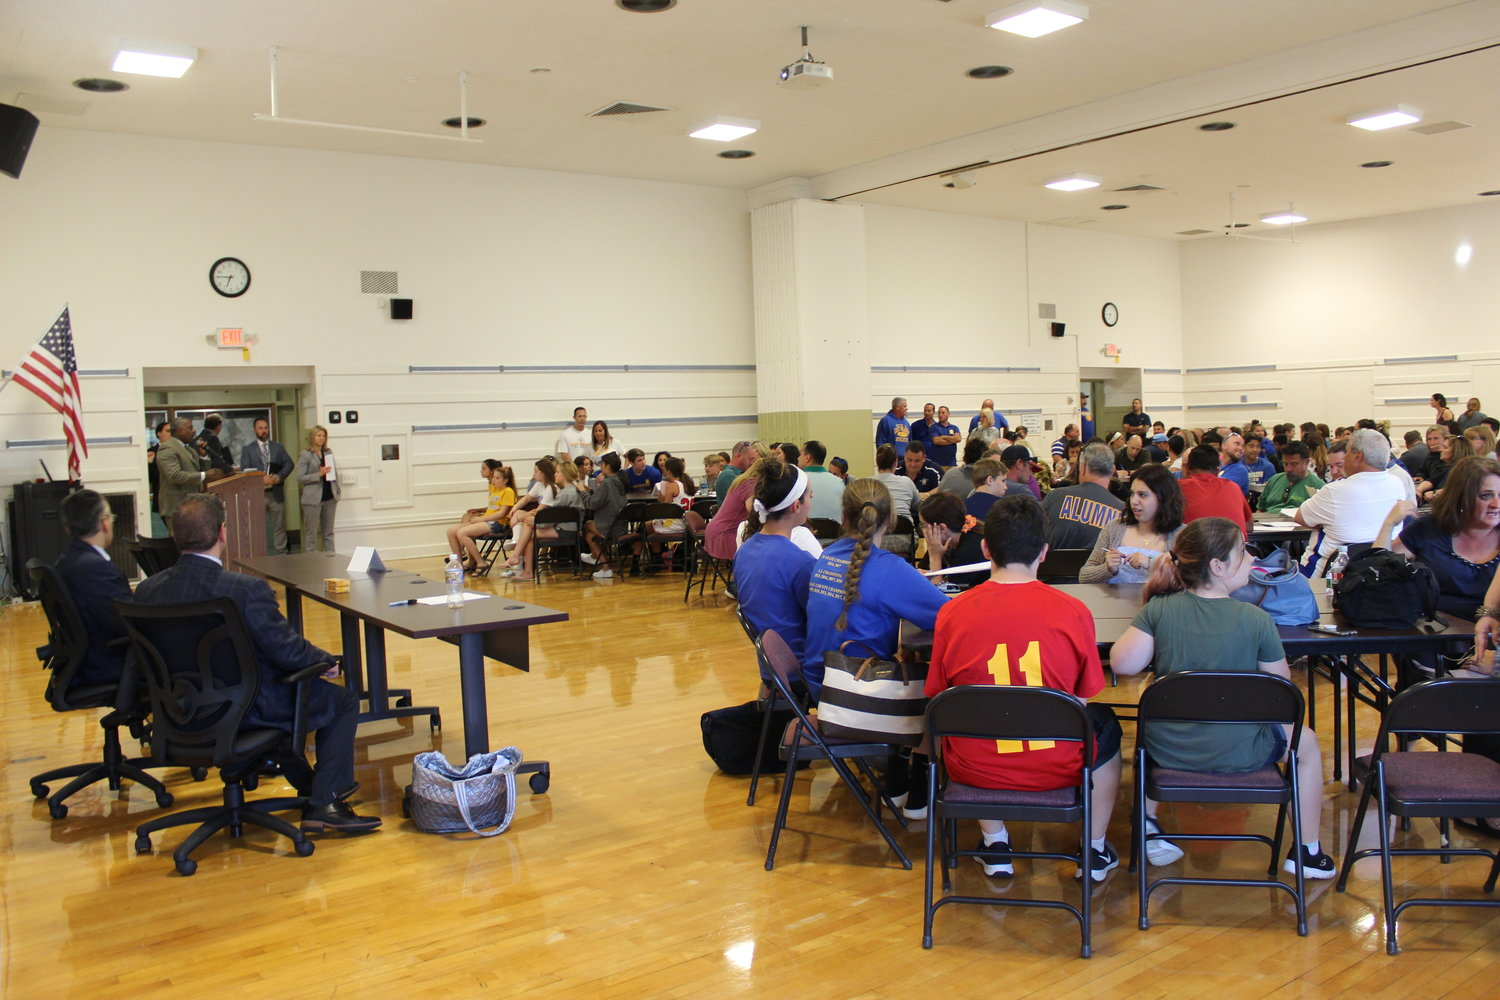 Dozens of student athletes and community members attended a June 3 public forum hosted by the East Meadow School District to discuss whether the district should install new natural-grass fields or opt for synthetic turf.